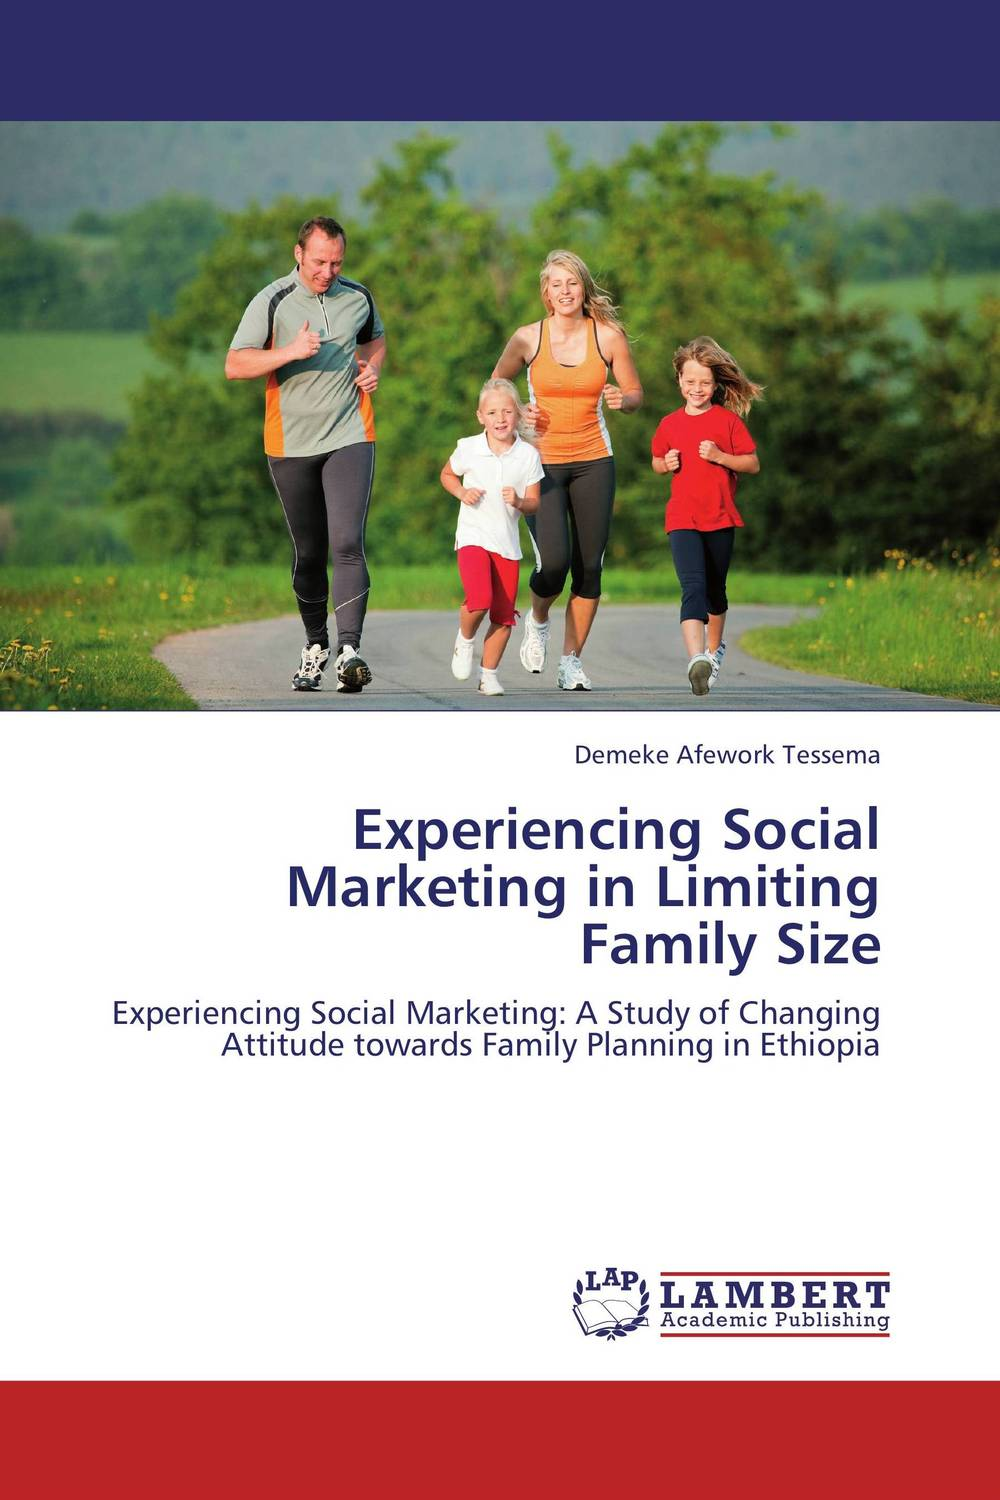 Experiencing Social Marketing in Limiting Family Size family planning practices in two semi